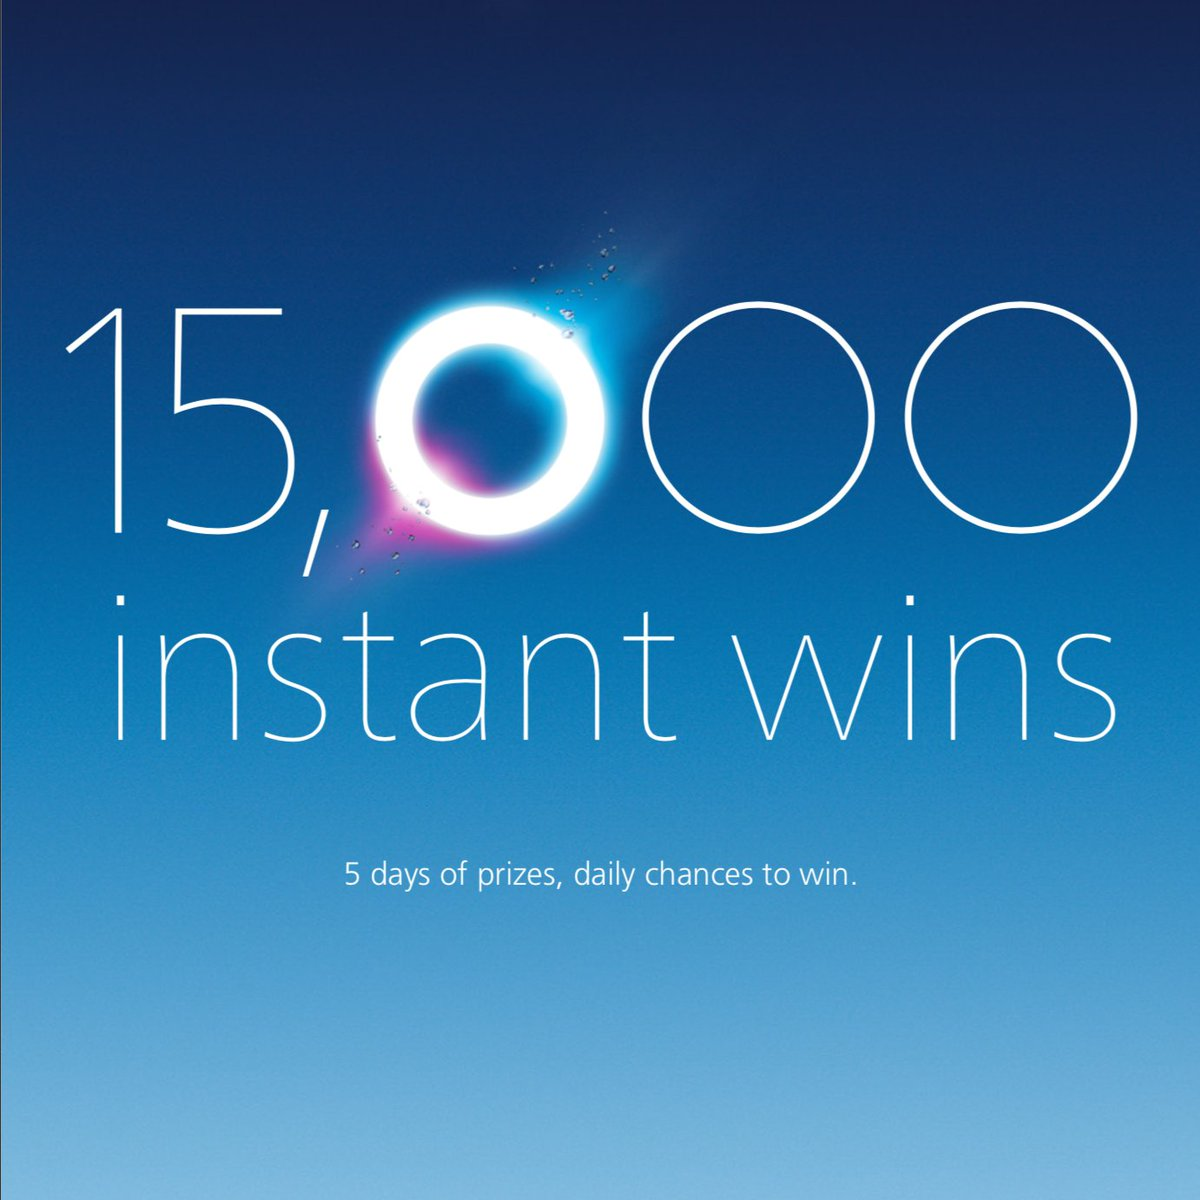 Instant win comps uk